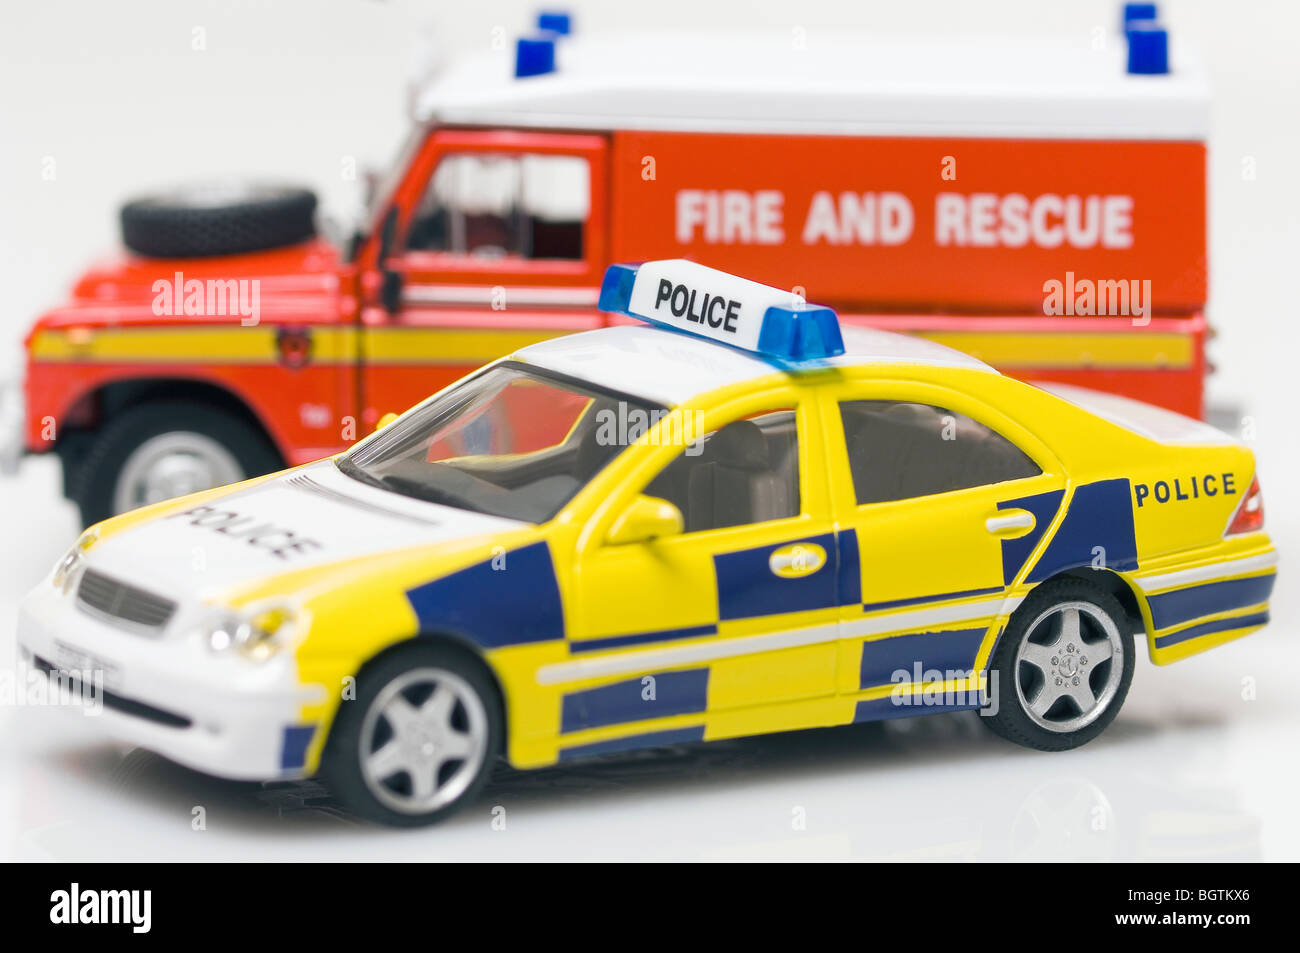 childrens toy police car and fire and rescue vehicle stock photo